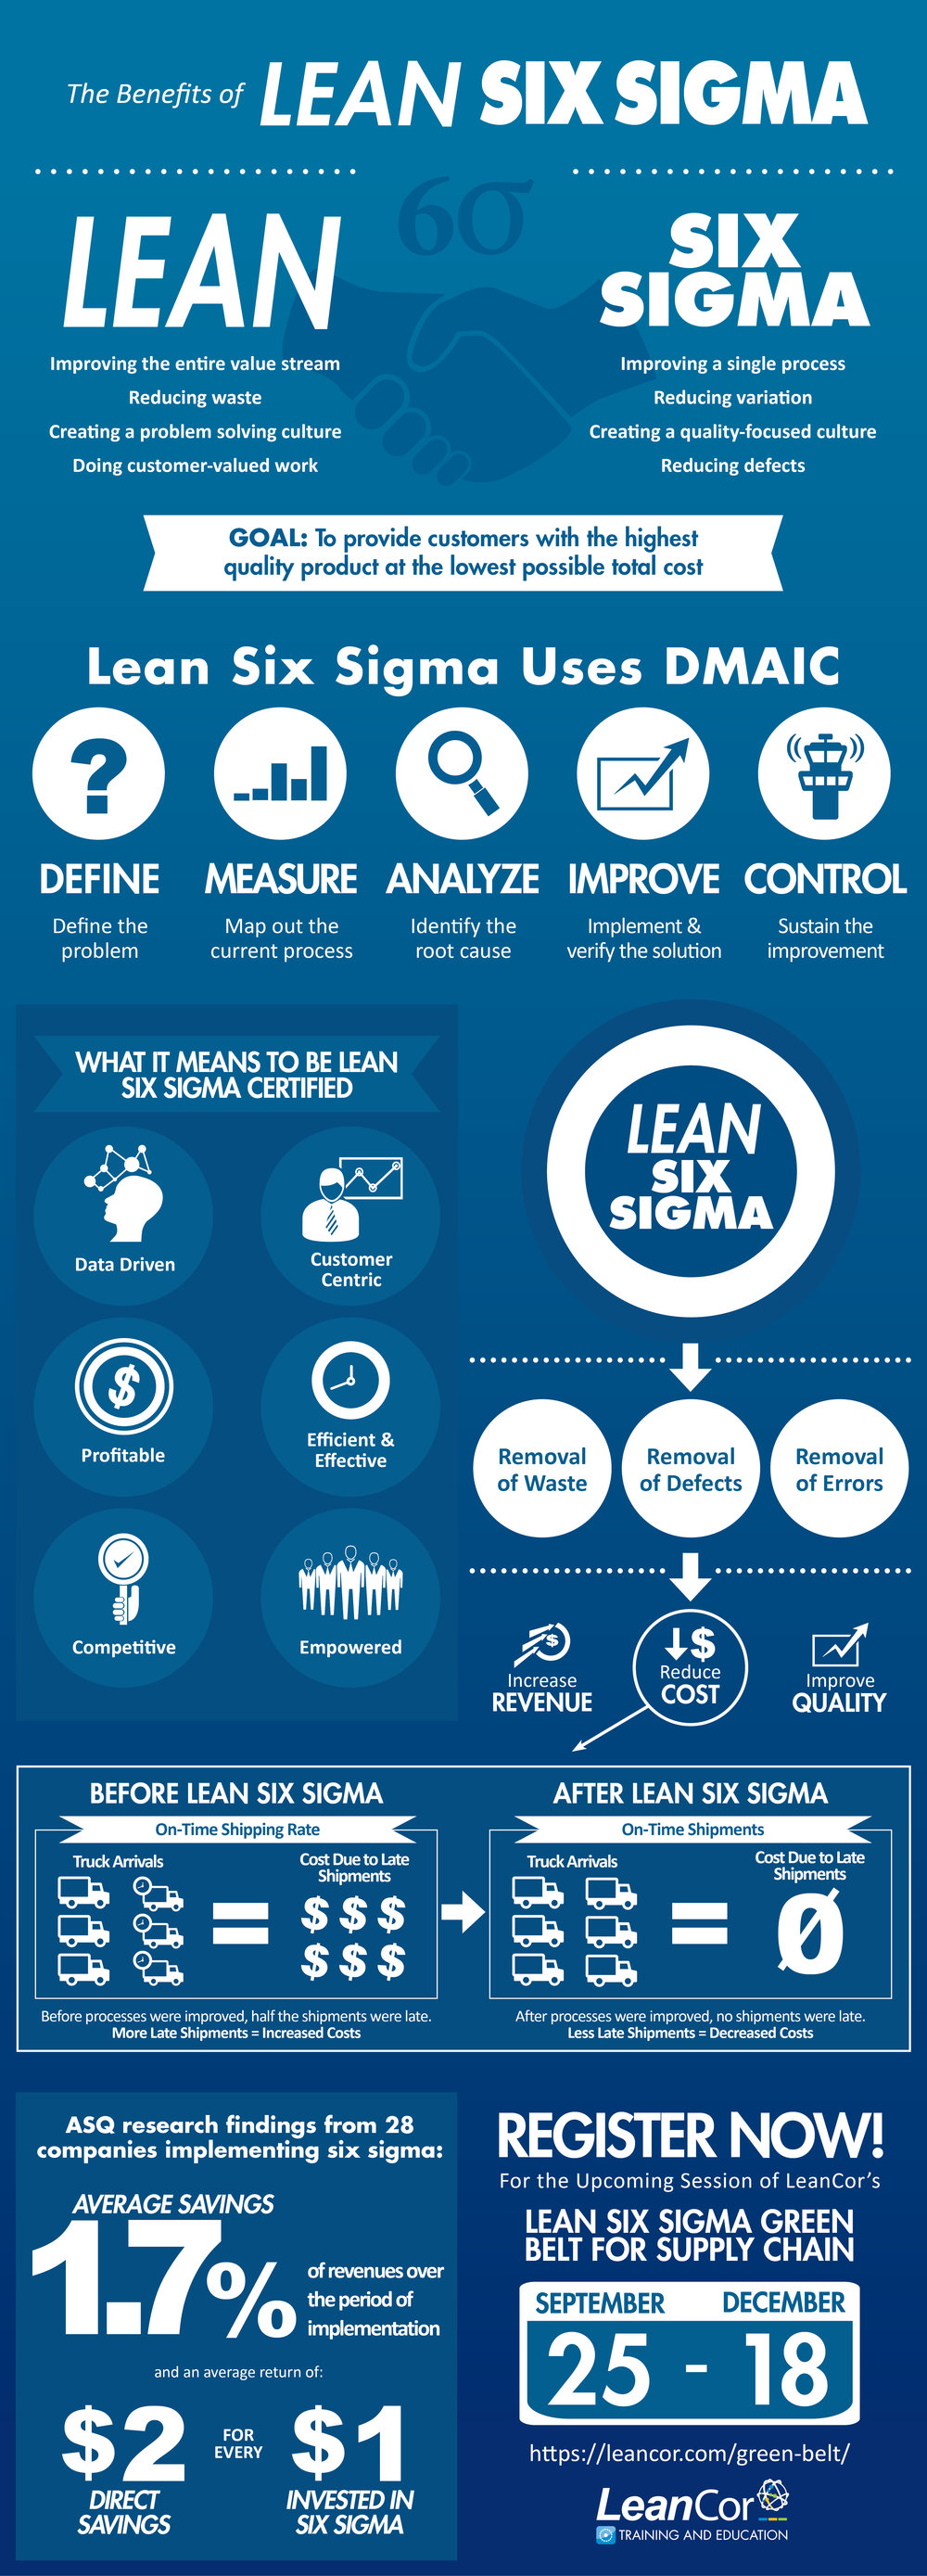 Lean Six Sigma Green Belt Course Infographic Justin Falck